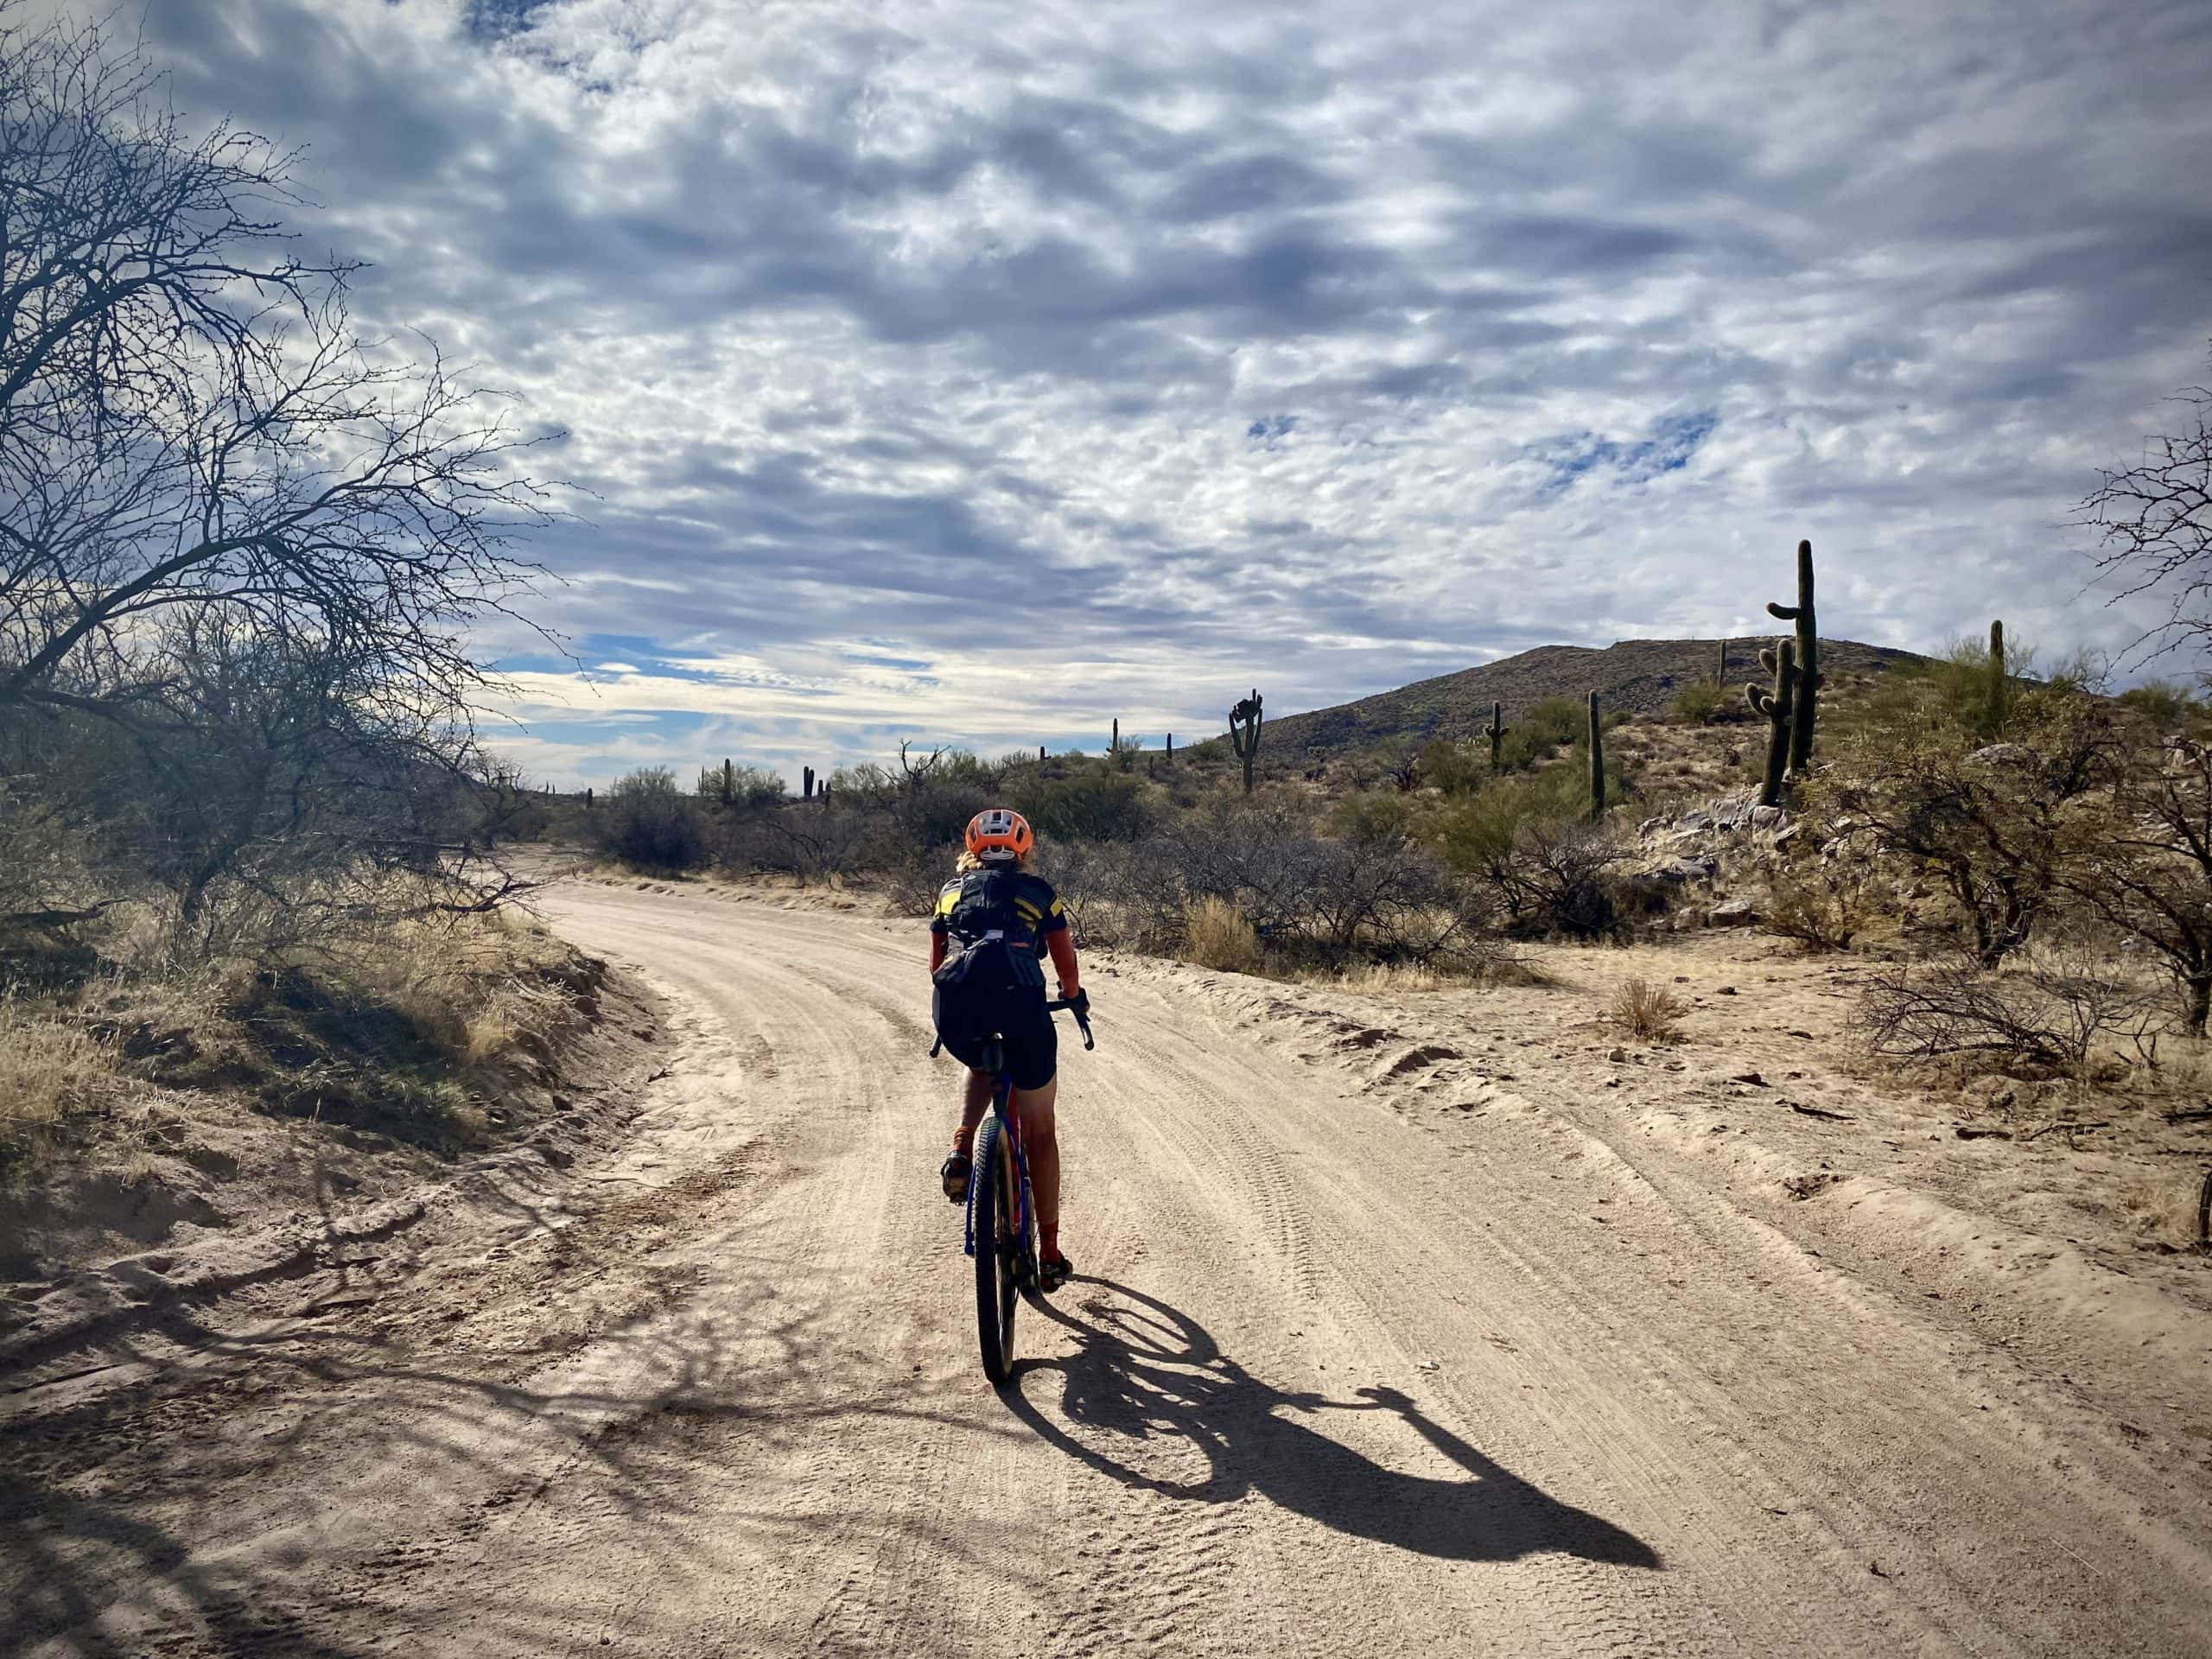 Gravel Girl going through sandy wash on 96 Ranch Road south of Florence, Arizona.